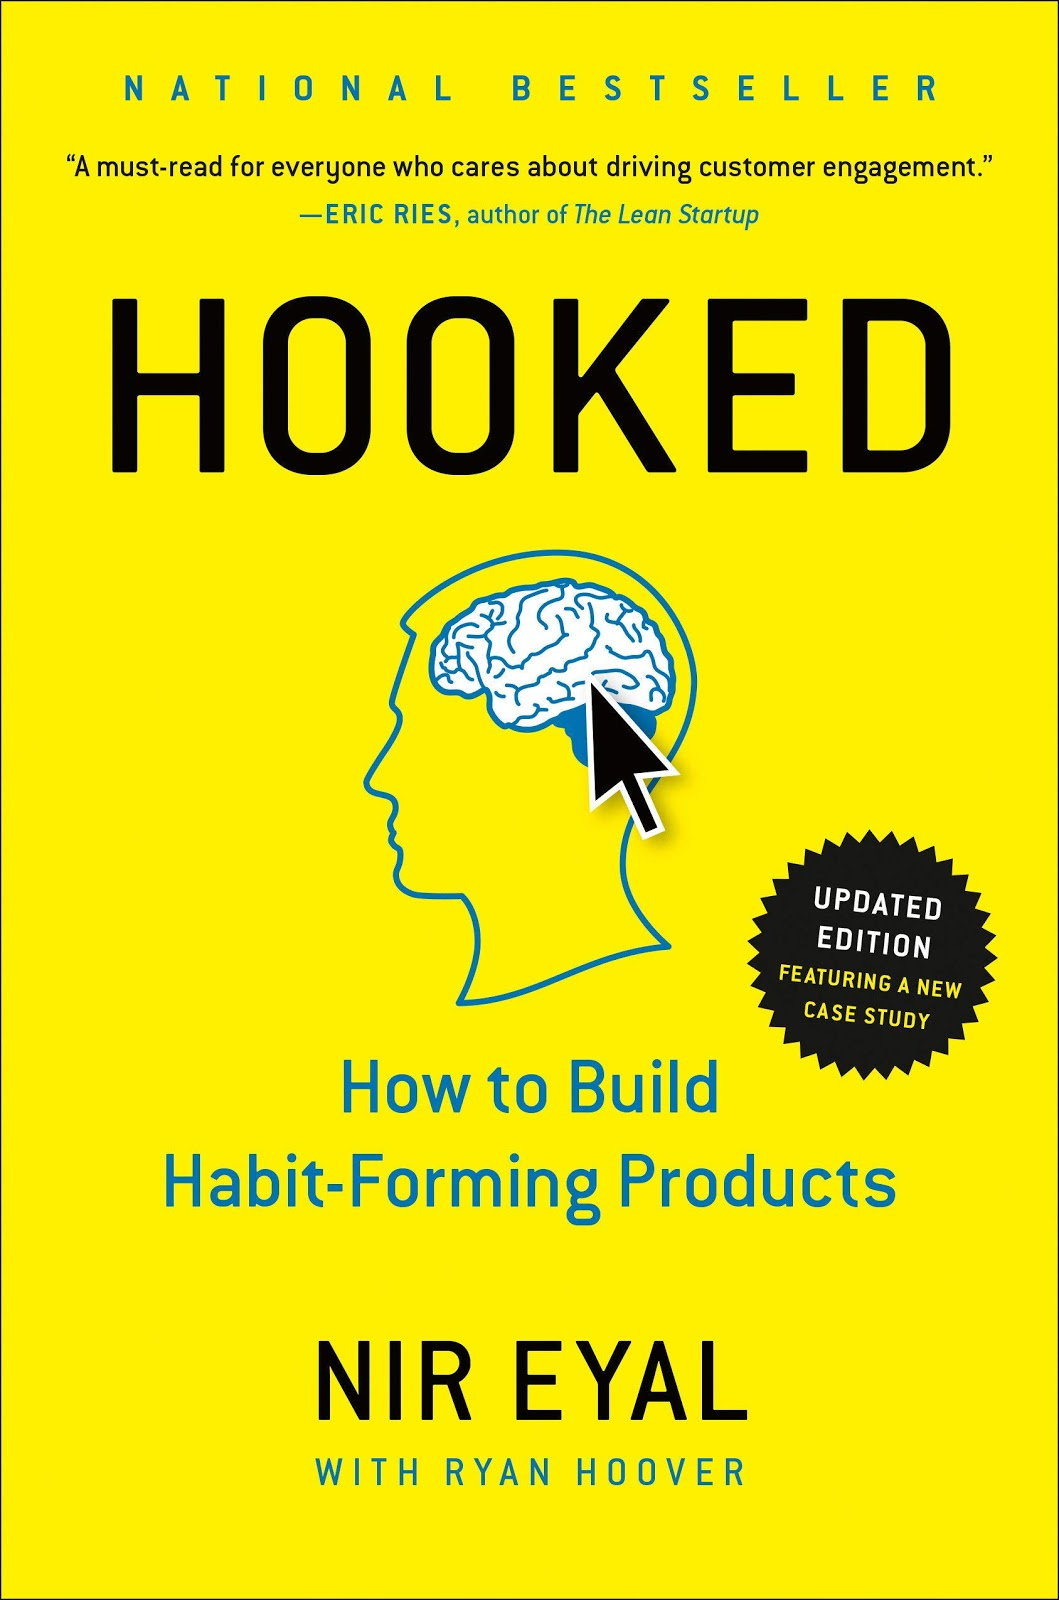 growth and growth hacking books hooked